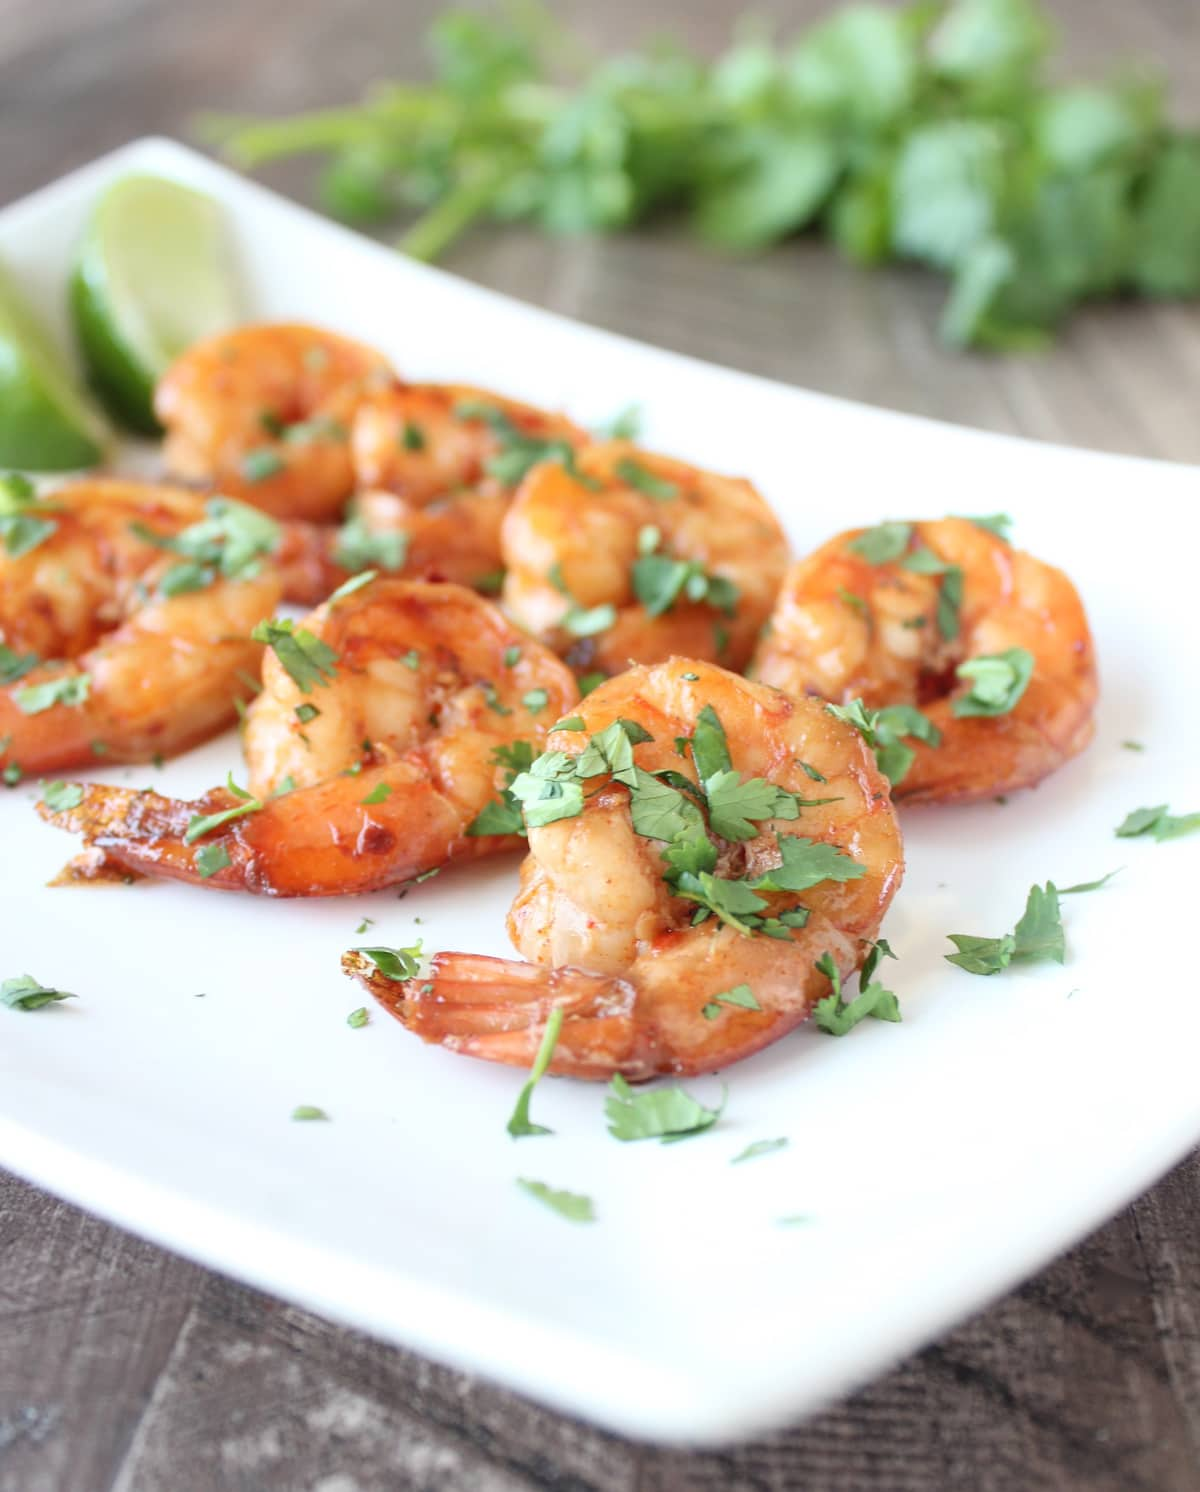 Chili Lime Garlic Grilled Shrimp Recipe - WhitneyBond.com